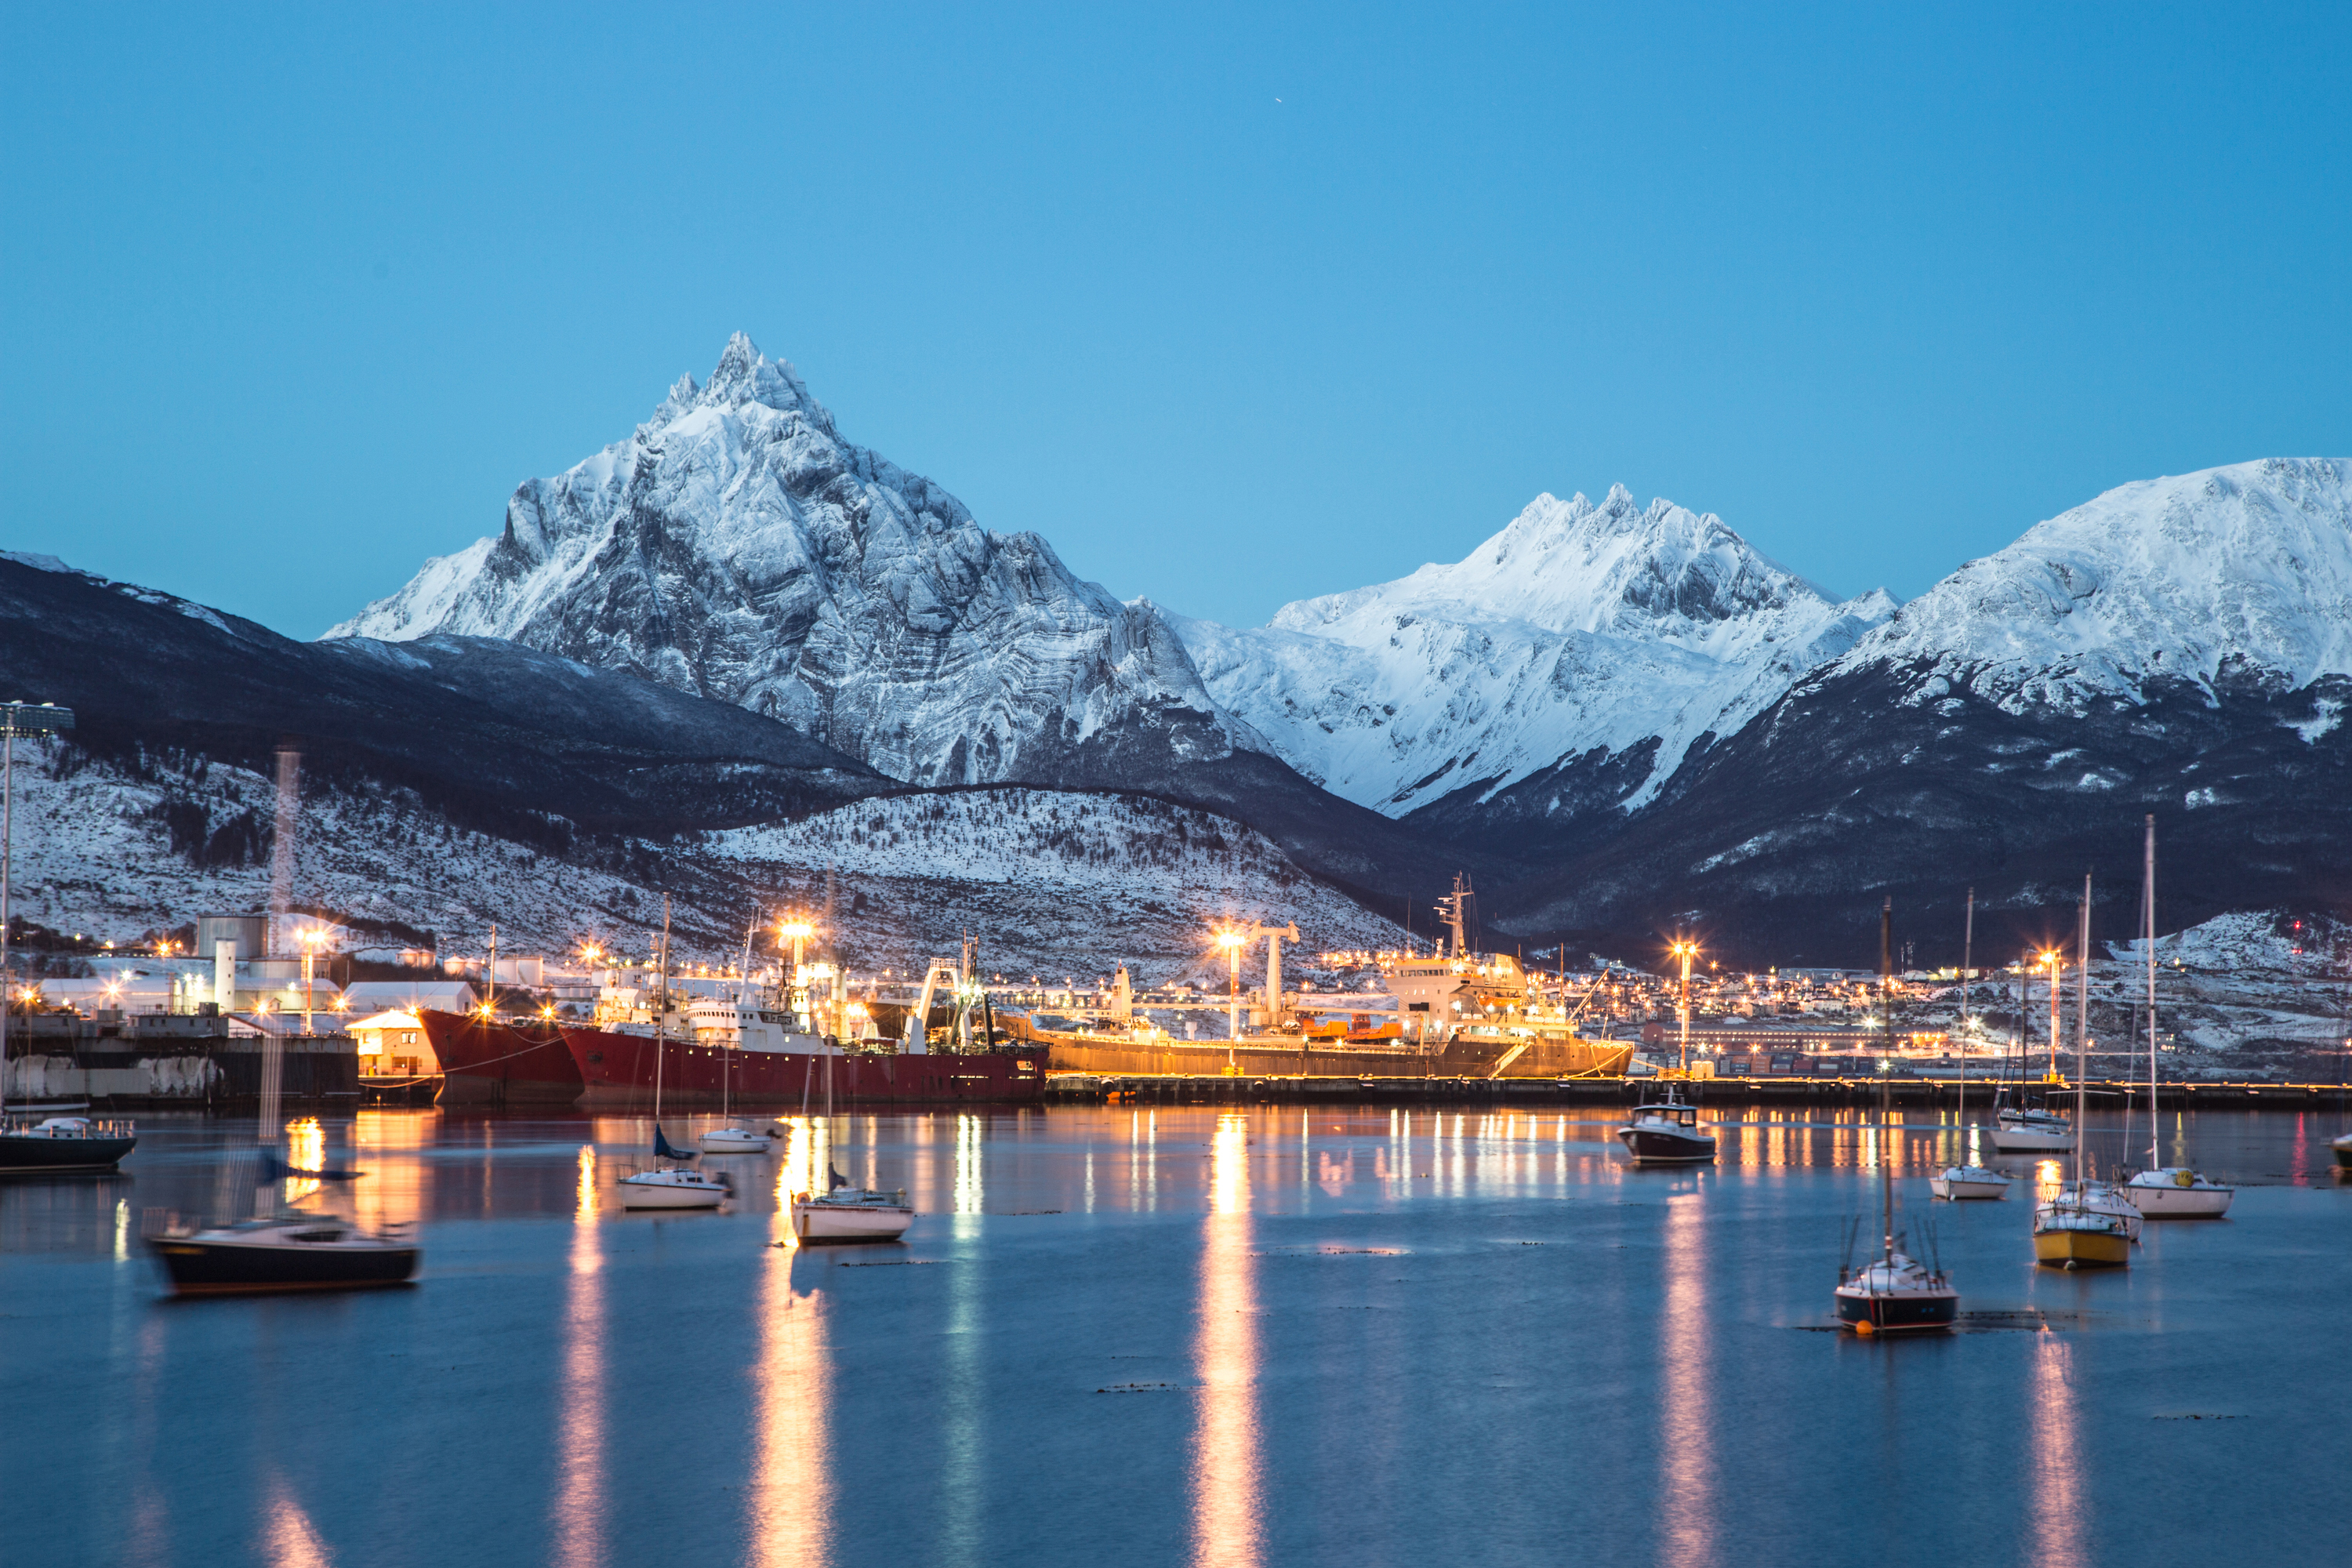 Ushuaia: The most awe-inspiring end of our world